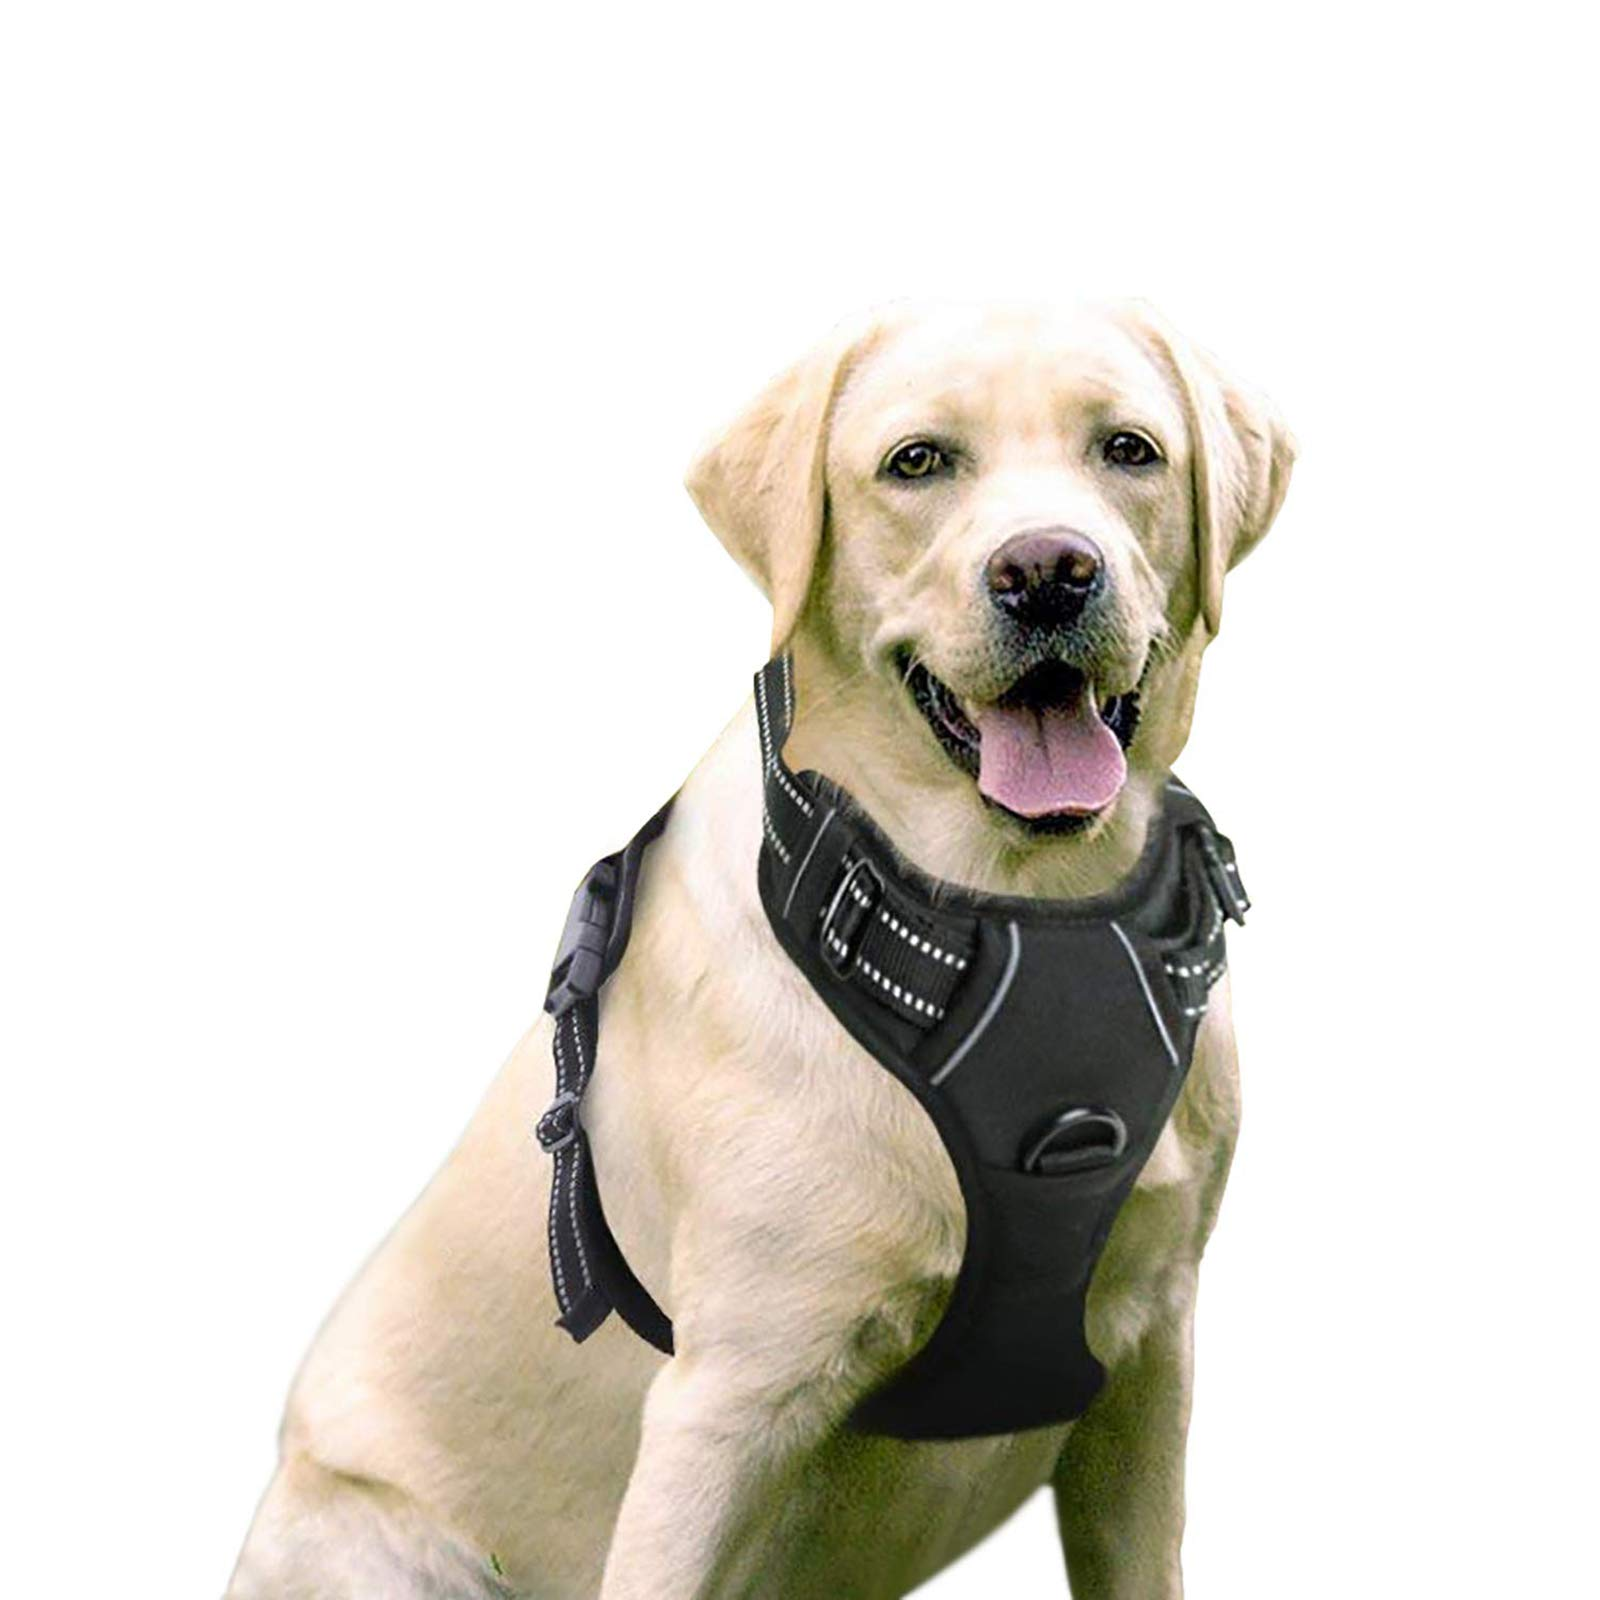 Pet No-Choke Halters with Nylon Handle Bolux No Pull Dog Harness Adjustable Pet Reflective Oxford Soft Vest Harness with Leash Clips for Small Medium Large Dogs